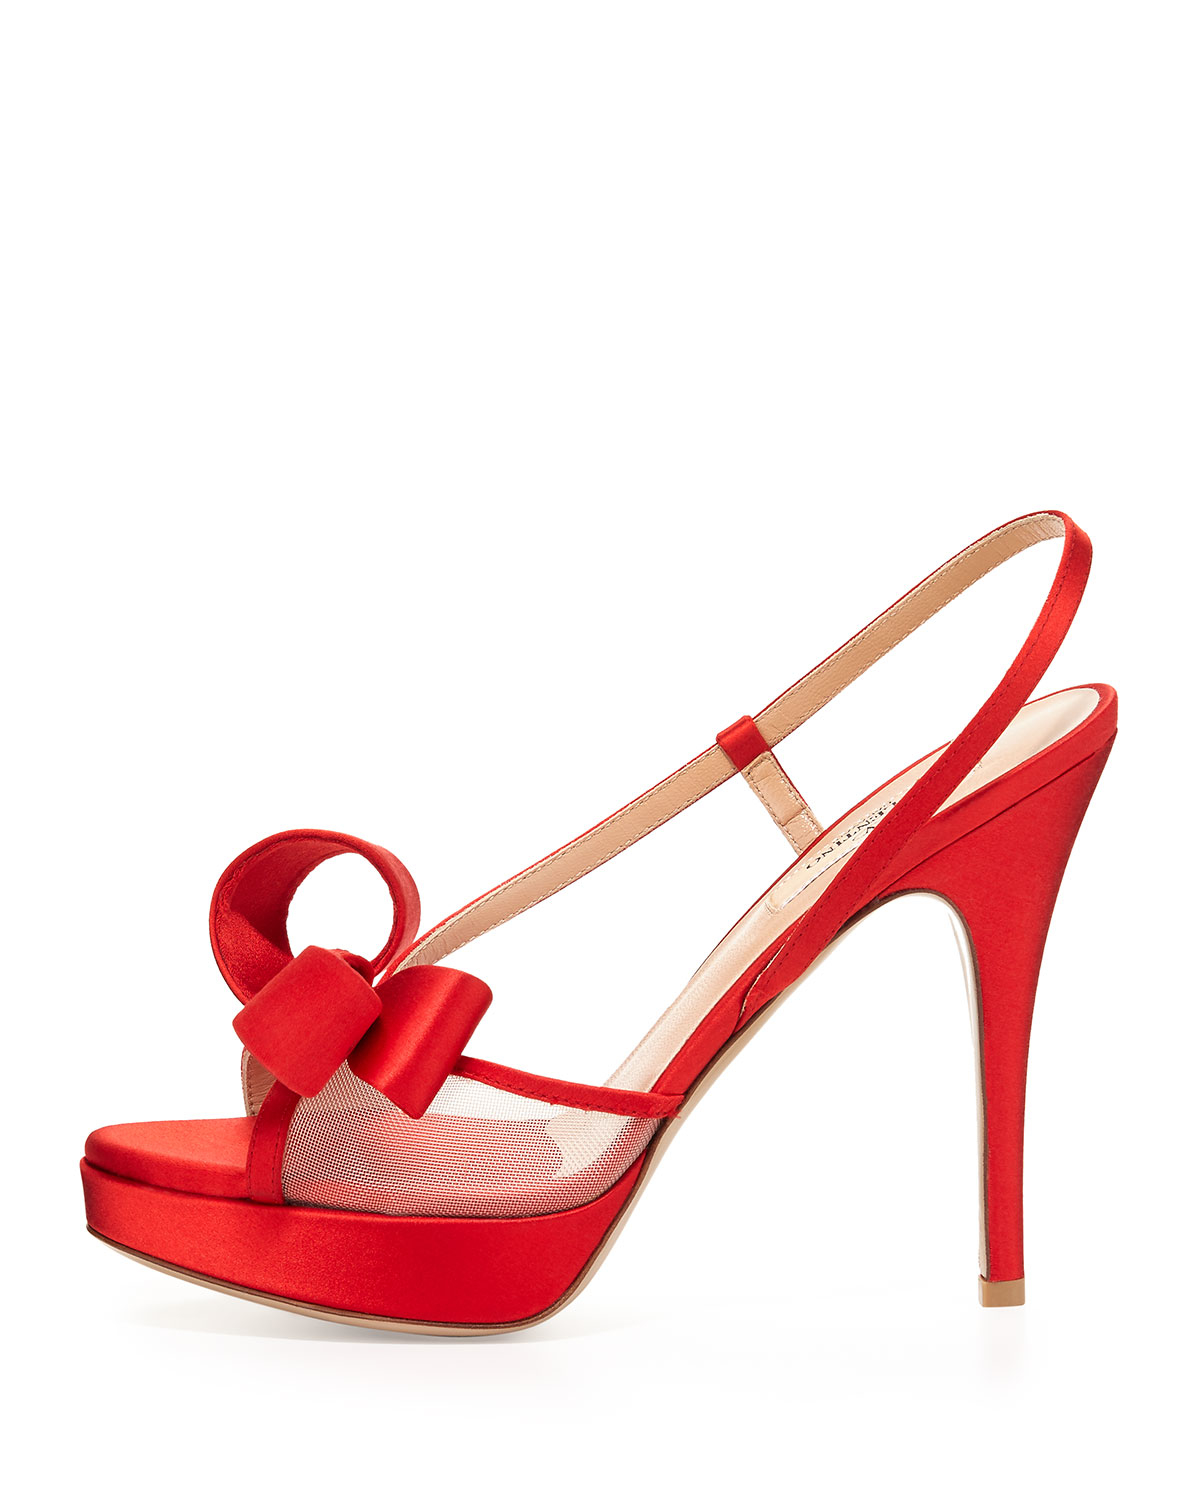 clearance amazon Valentino Bow Slingback Sandals cheap real eastbay sale clearance store buy cheap buy Xurwb